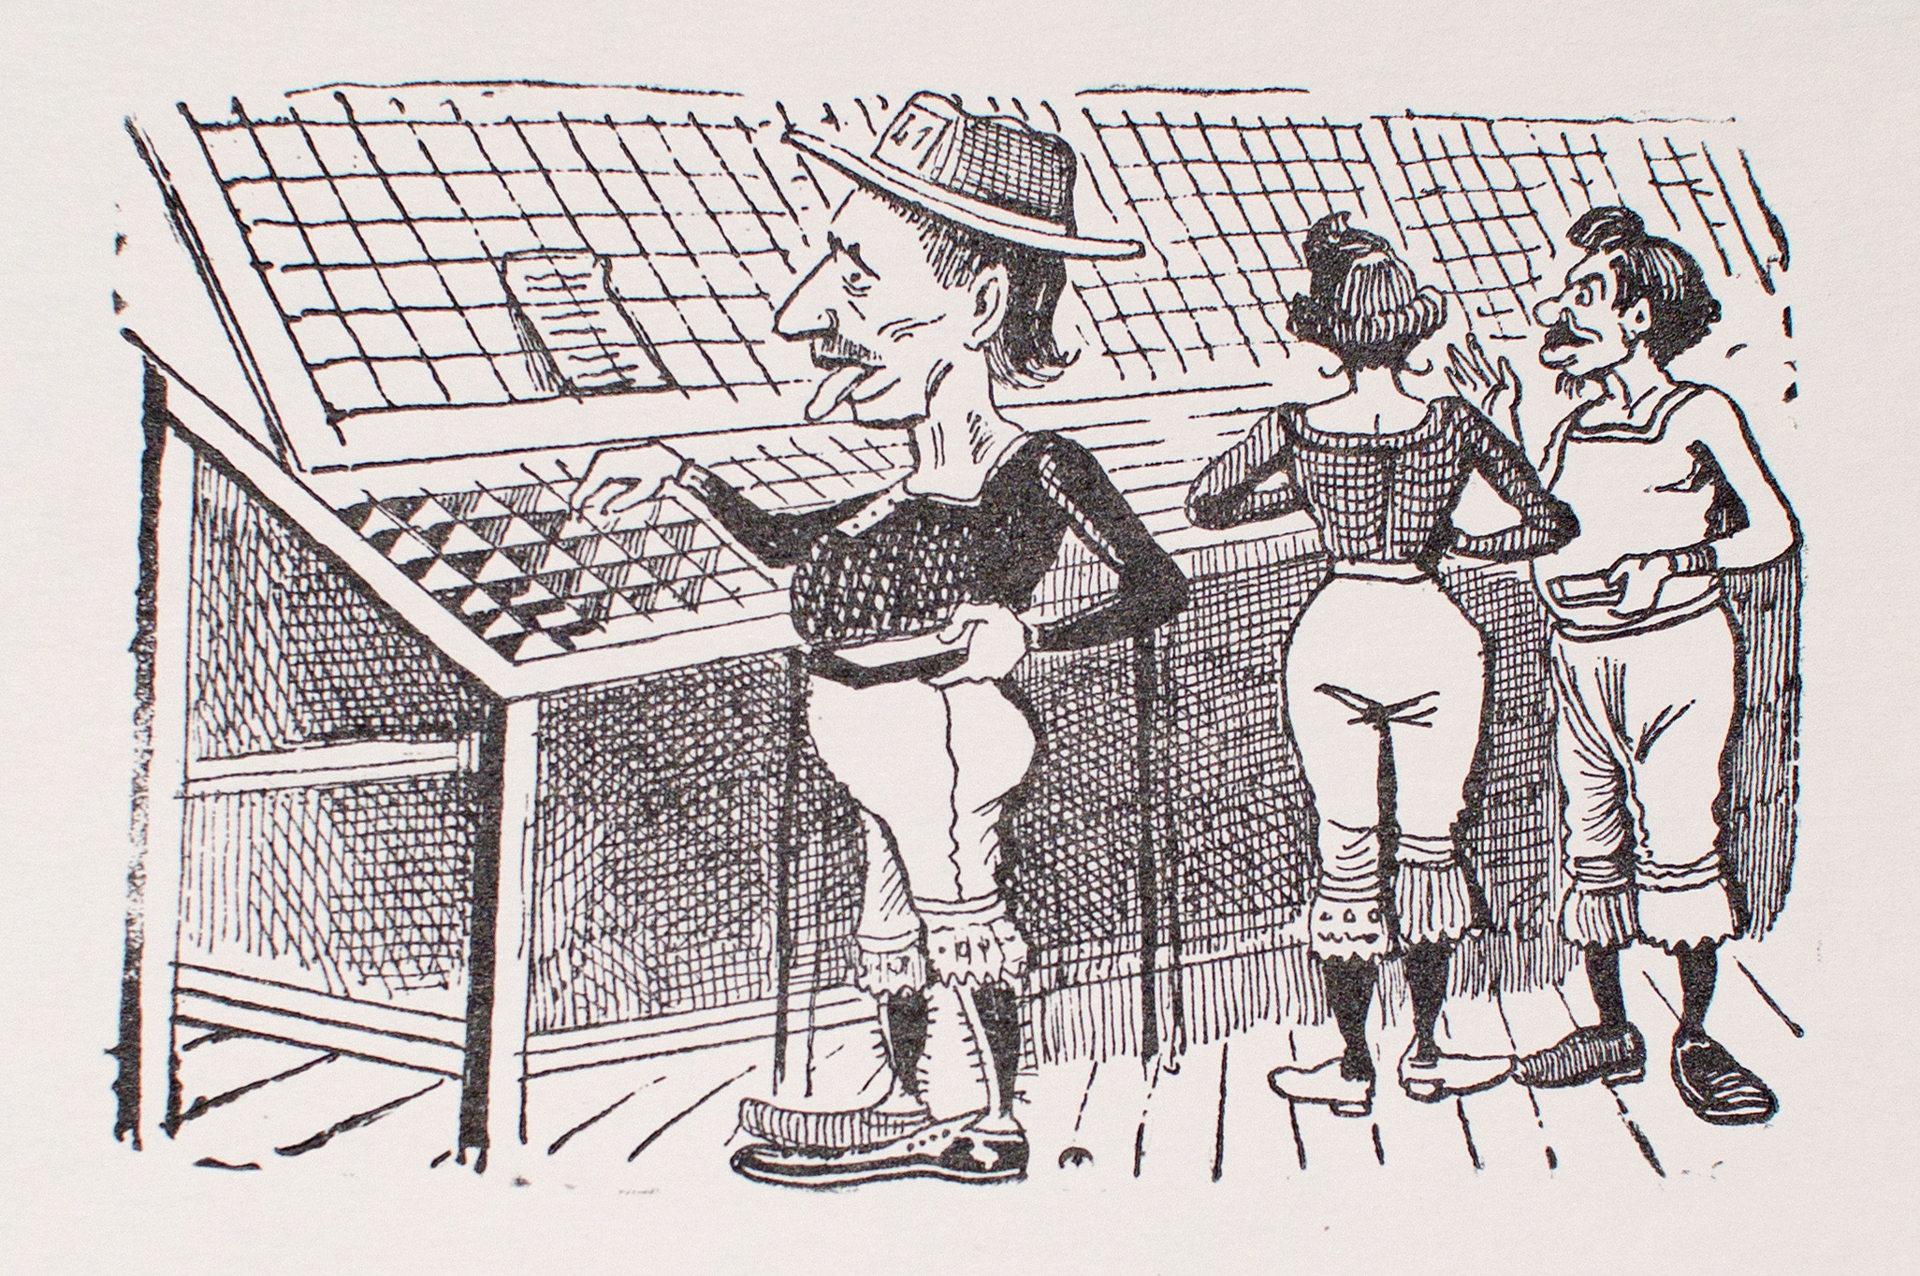 A man wearing bloomers and a hat looking through merchandise by José Guadalupe Posada (1852 - 1913)